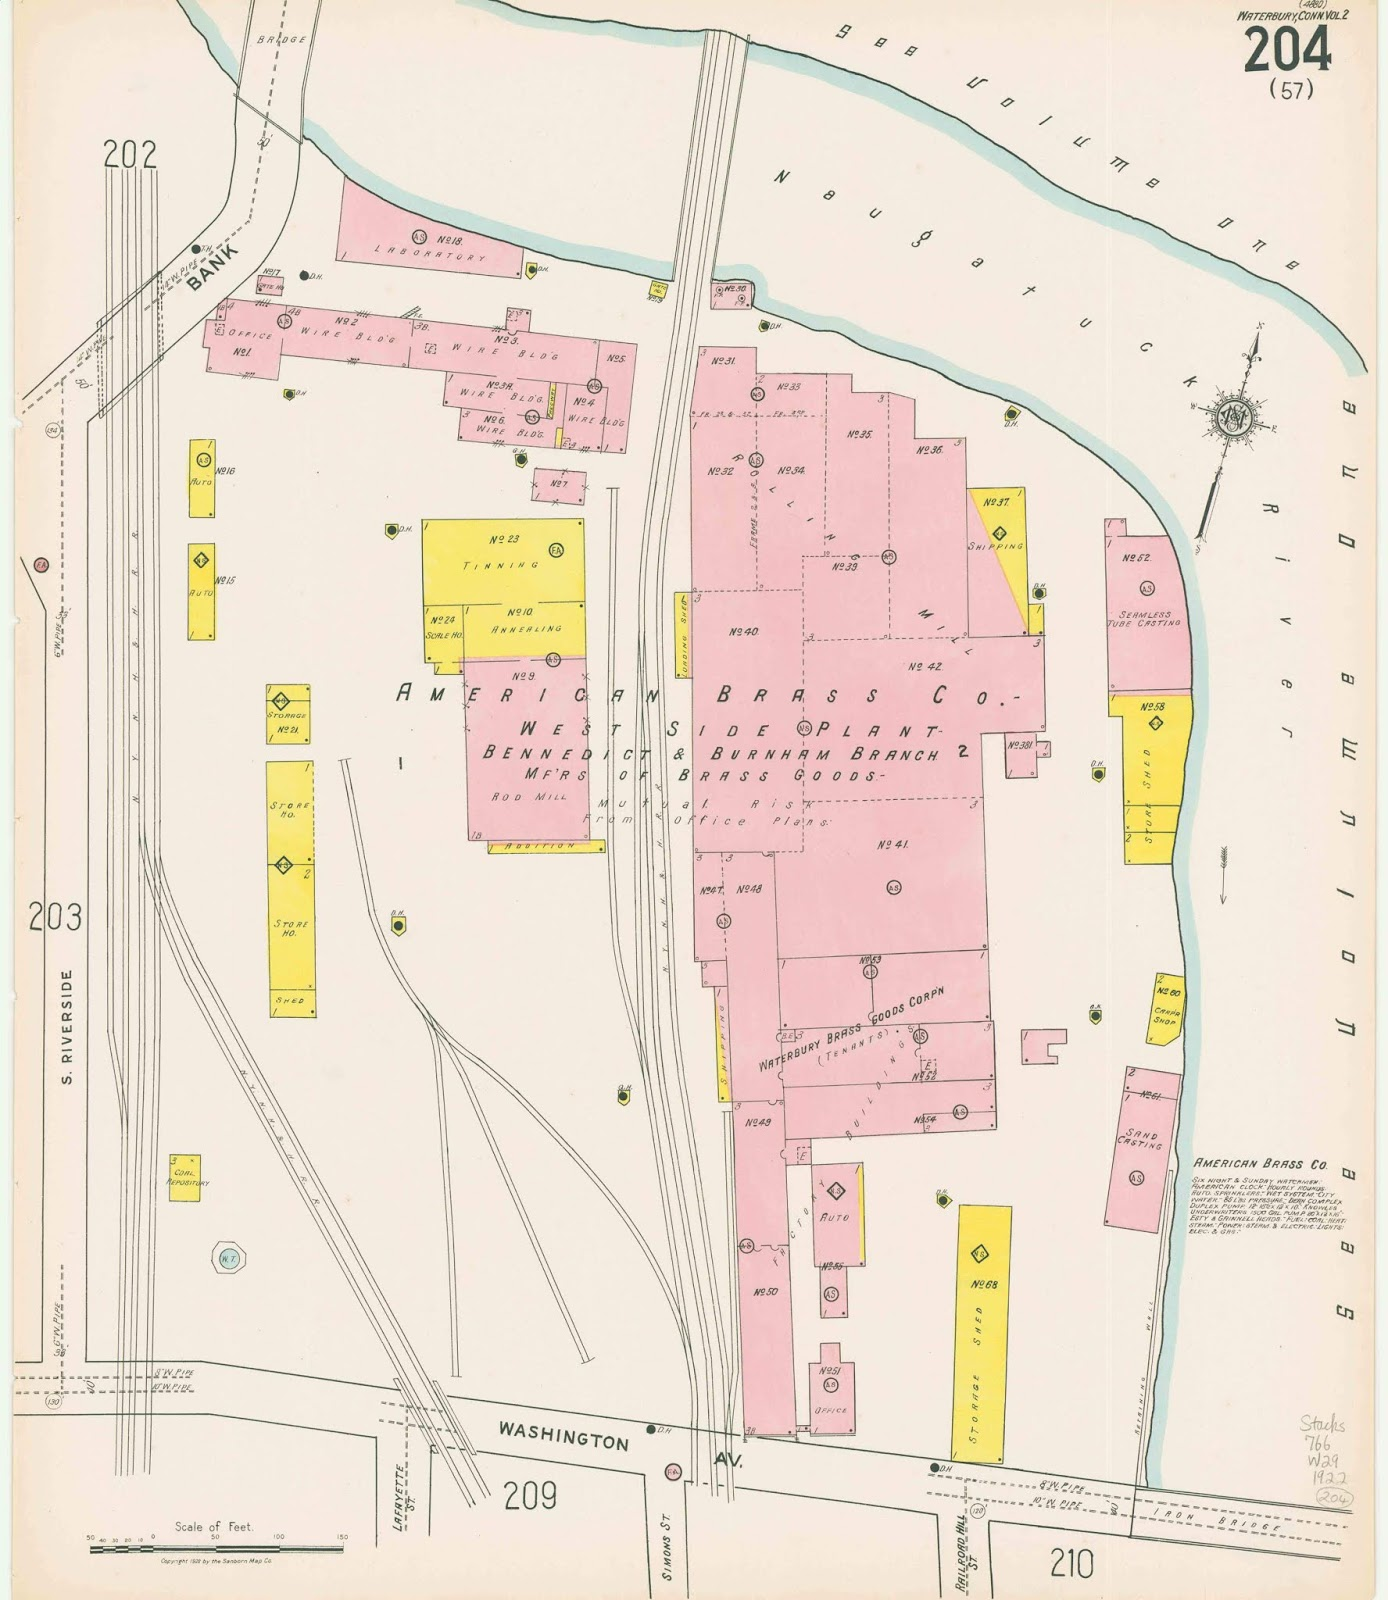 sanborn fire insurance map volume ii 1922 collection of beinecke library yale university